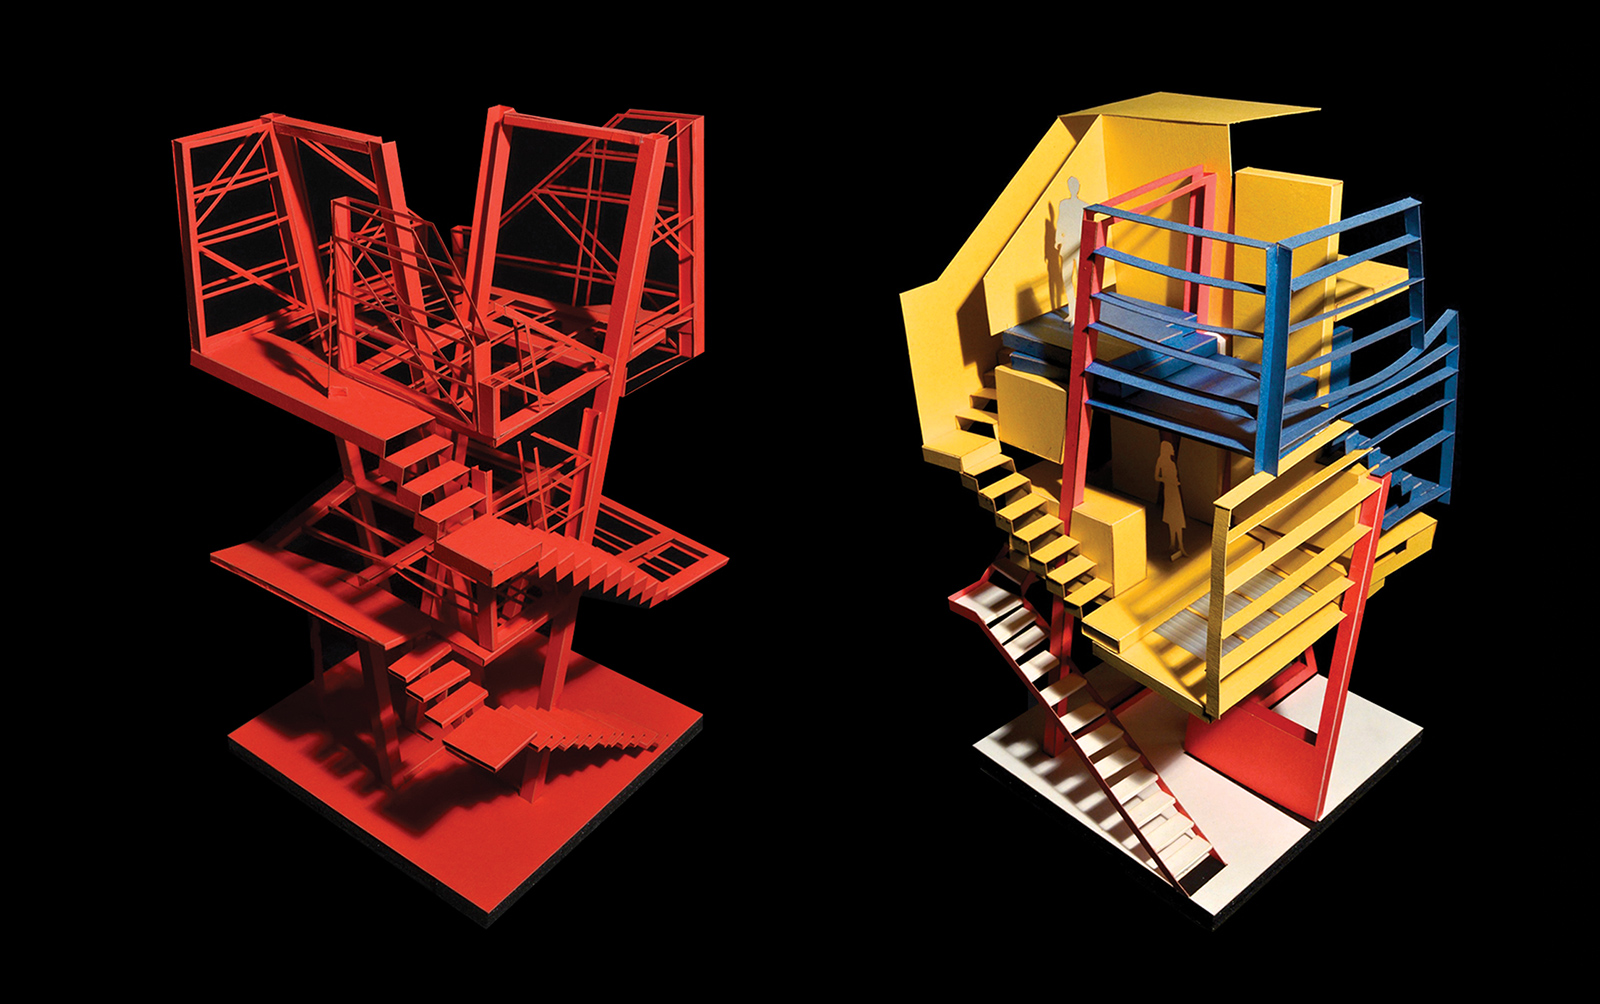 Pair of model studies looking at the structural system and shelving systems stabilizing the CTST infill construction